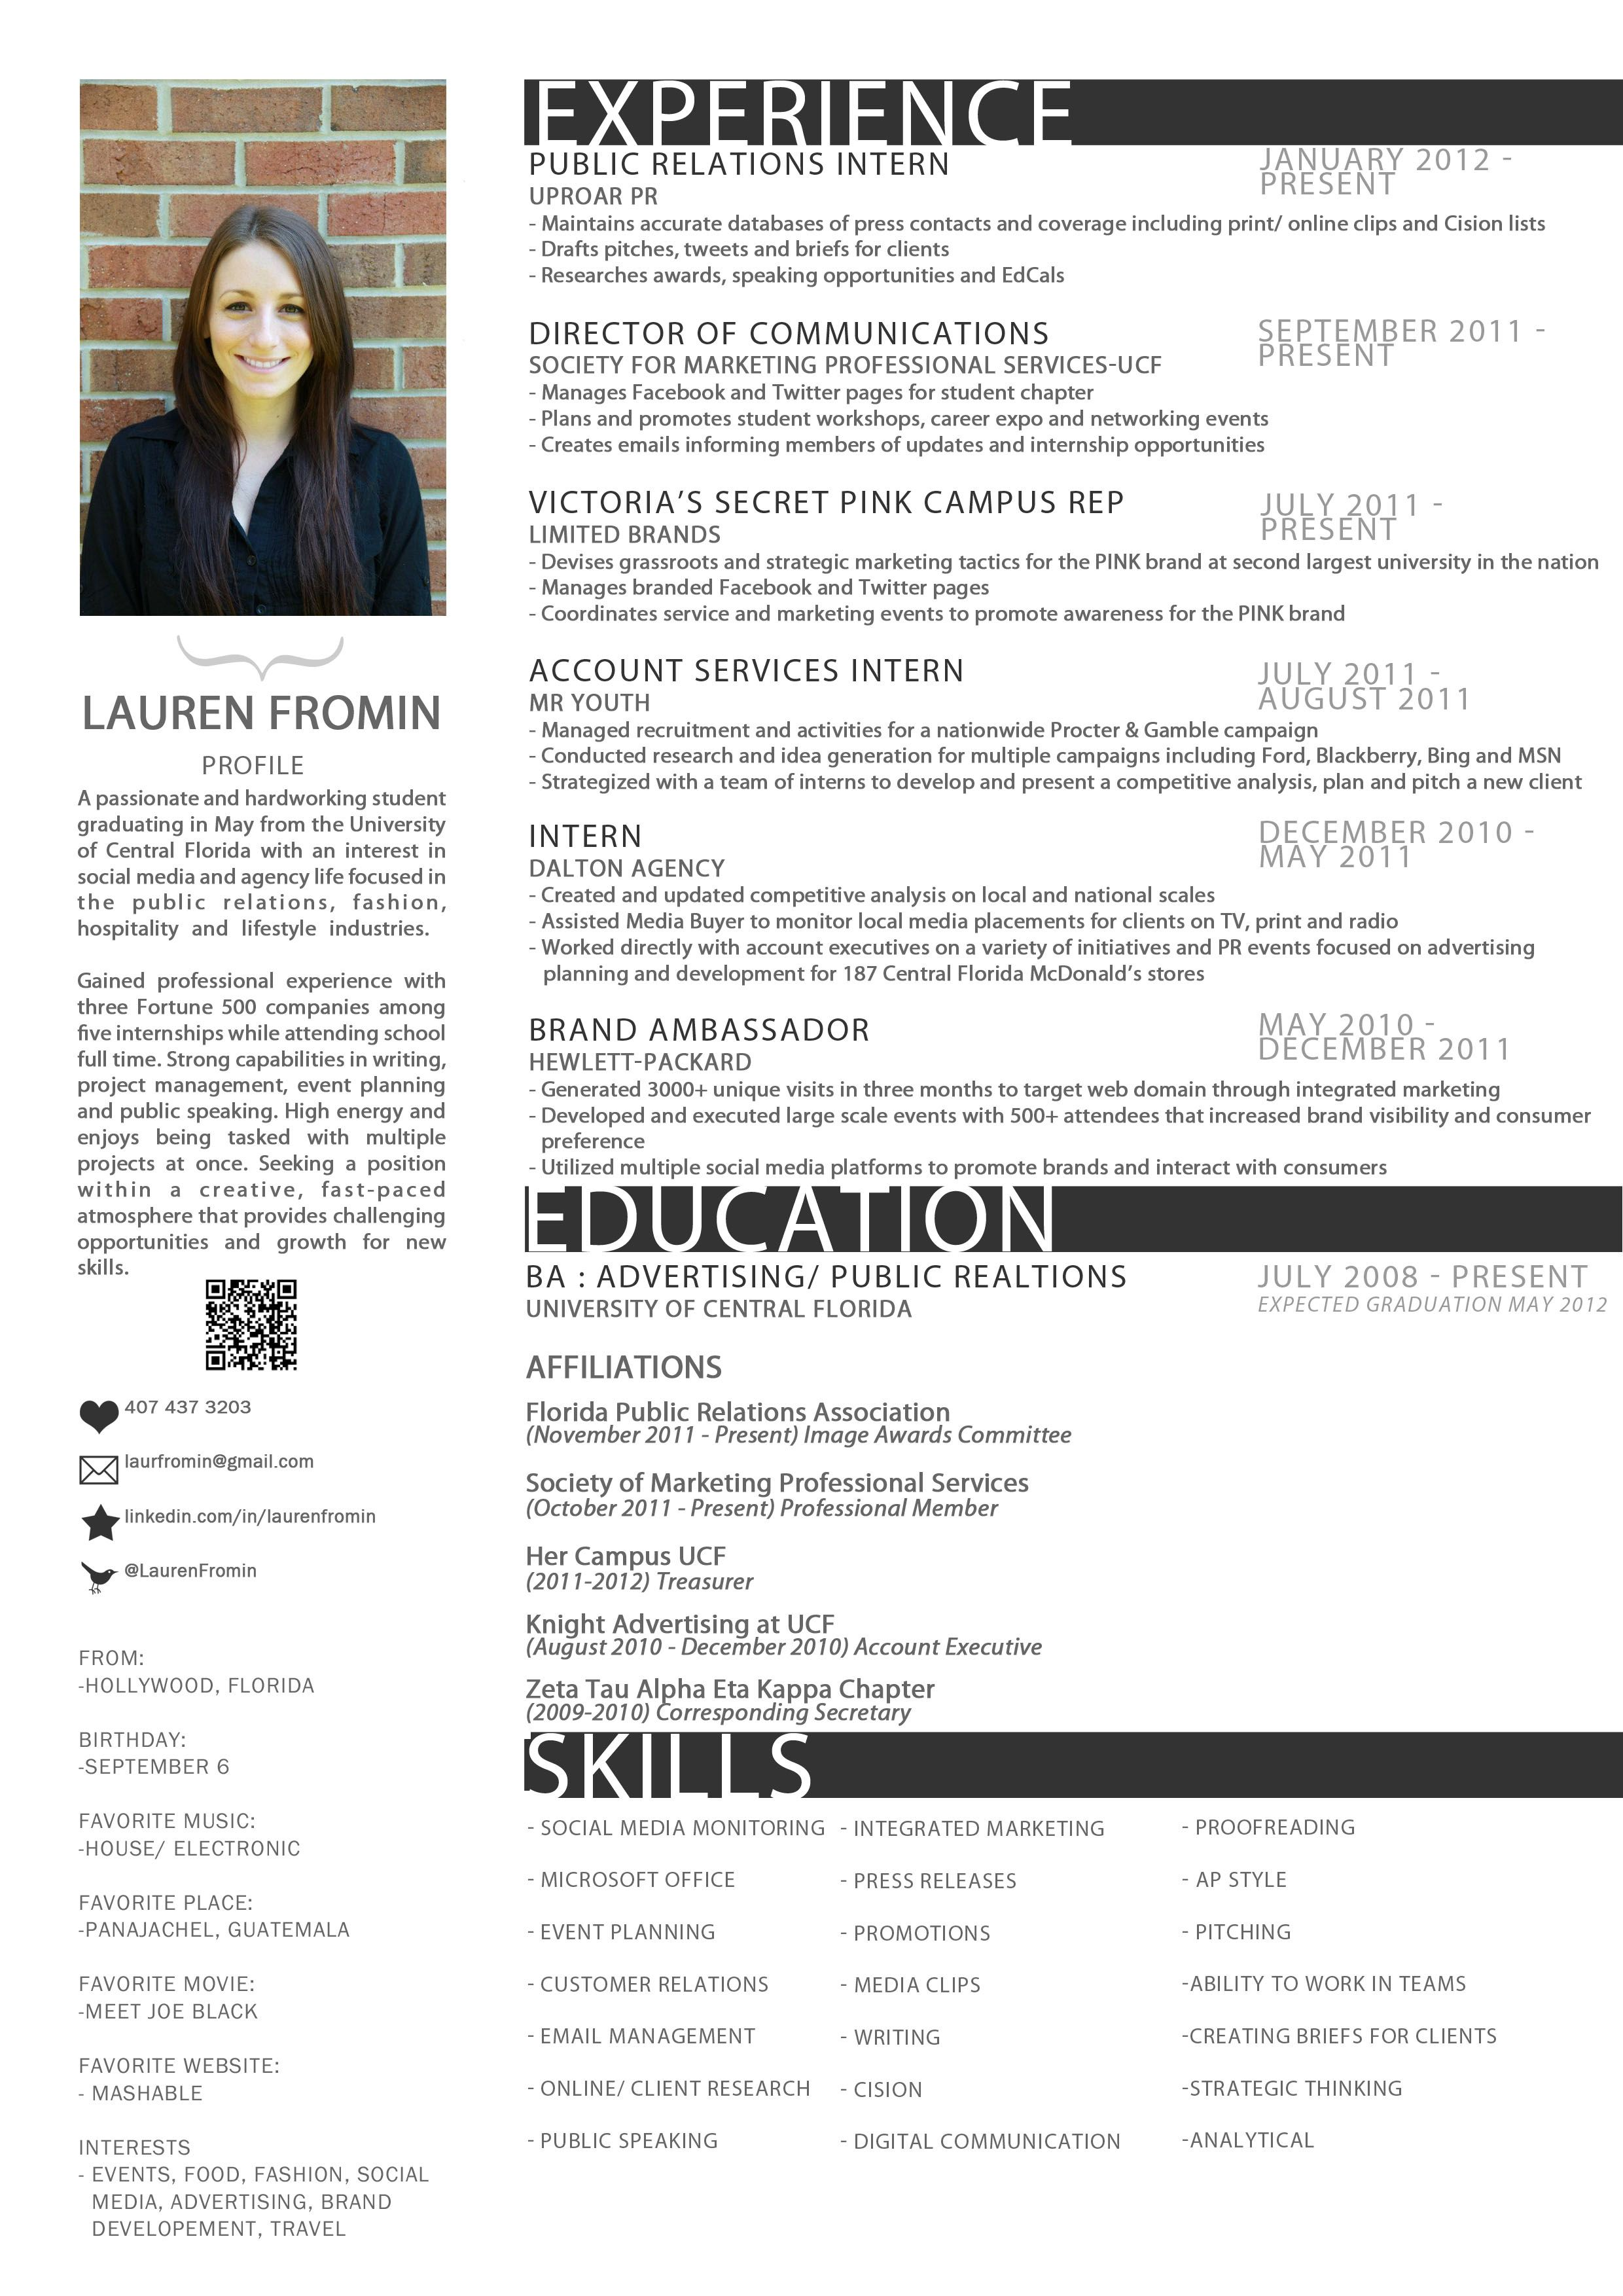 New Resume Samples New Resume Resume Samples Resume Resume Design